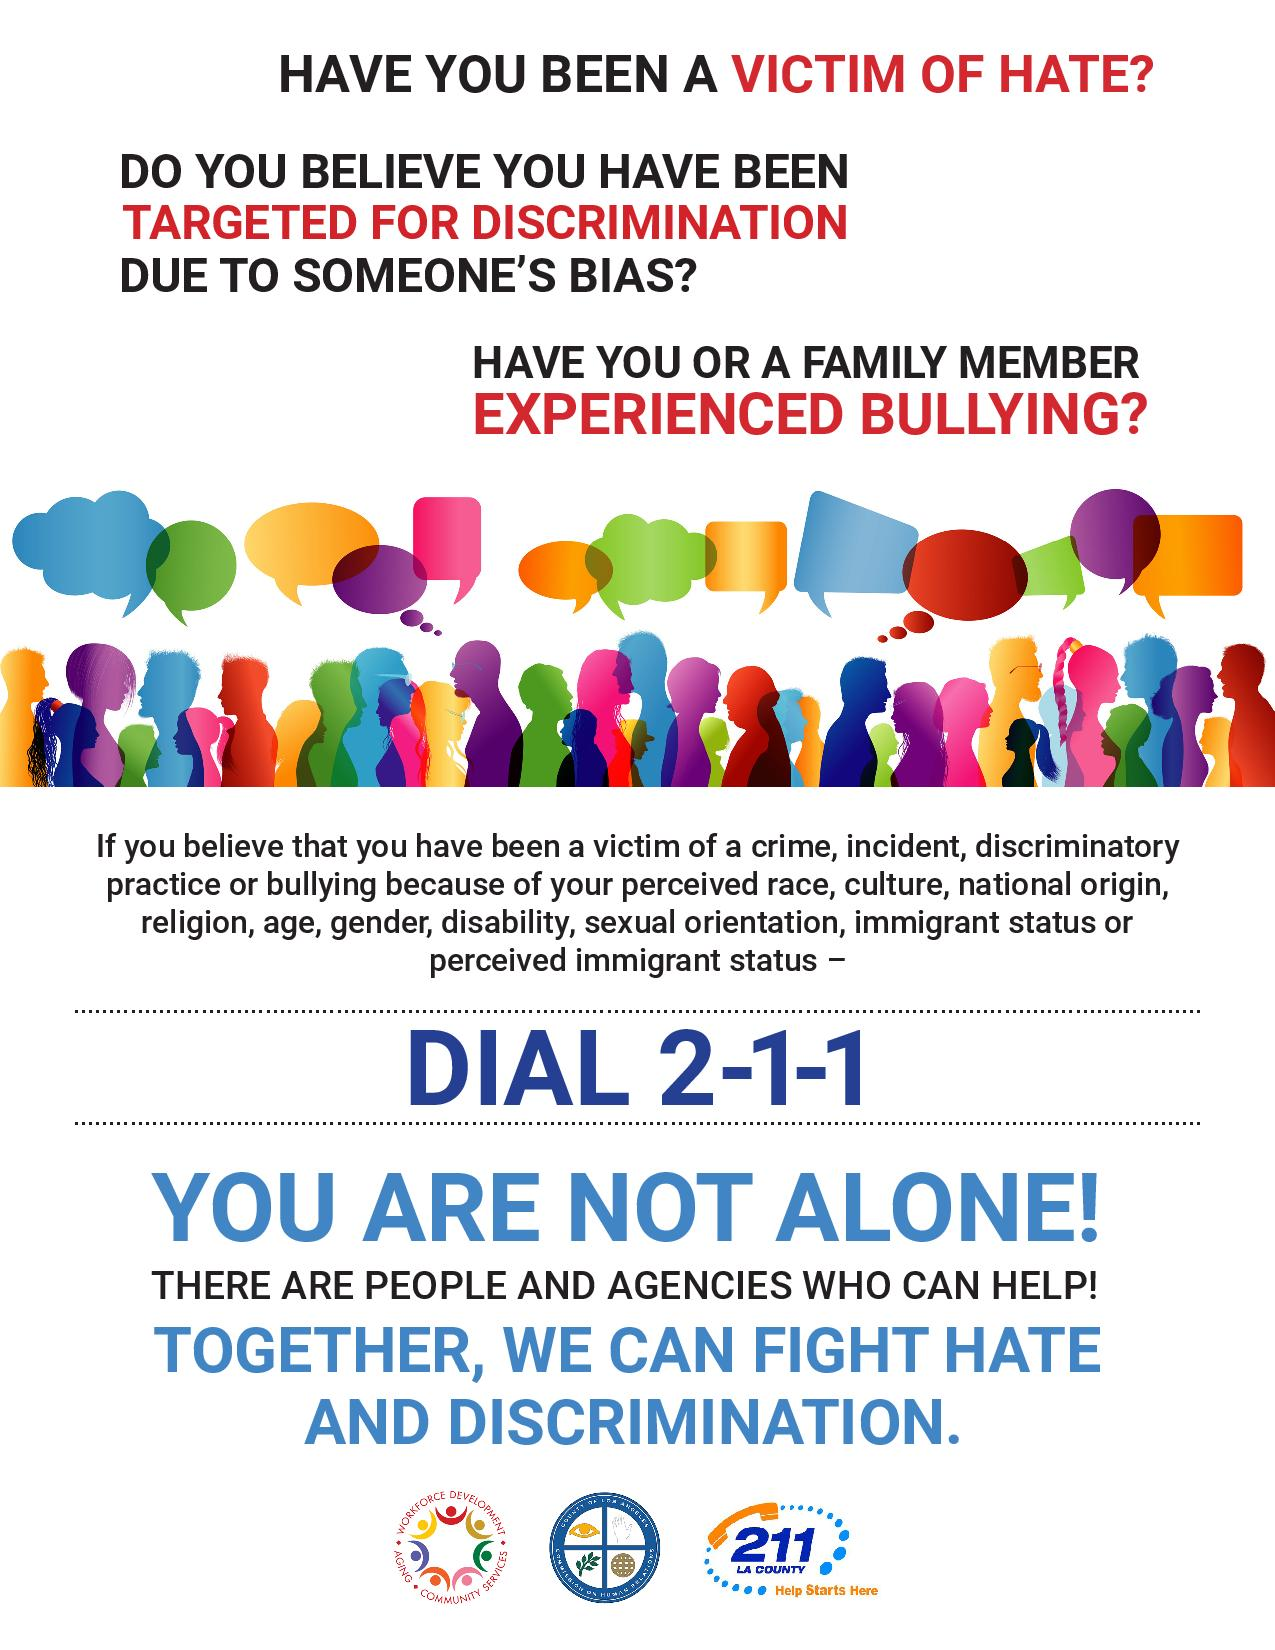 report hate image in flyer